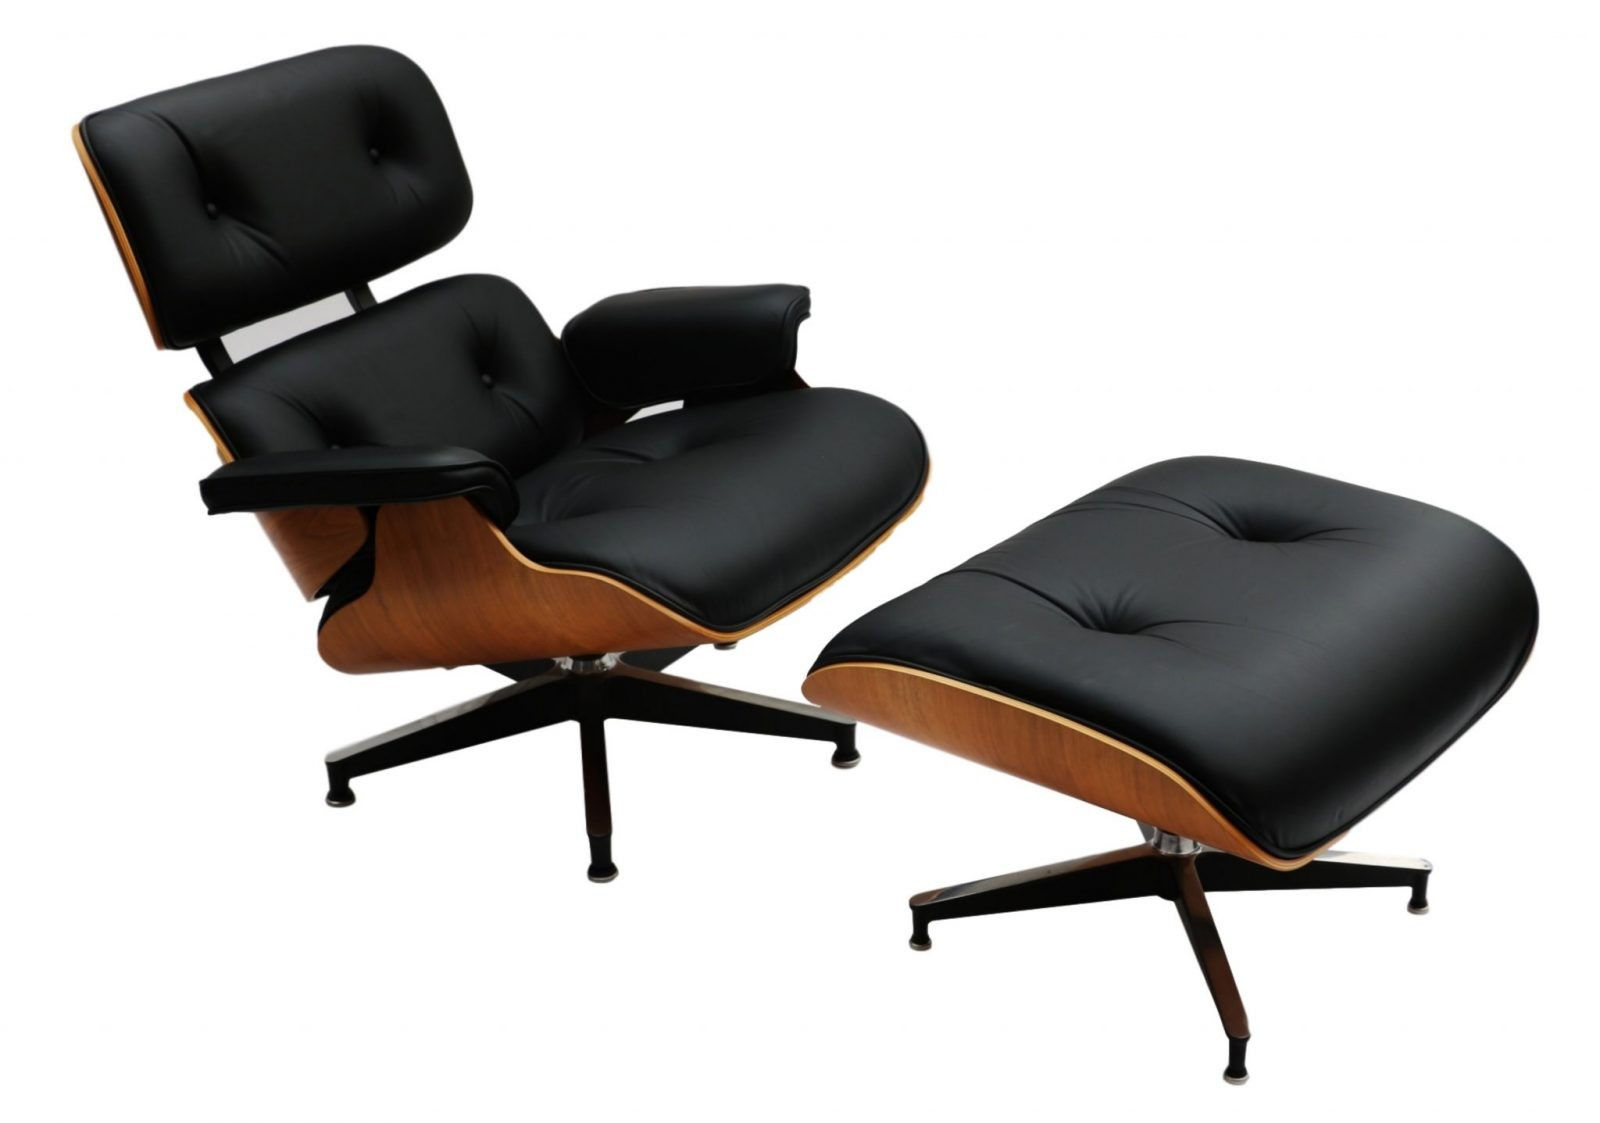 Eames Ottoman Herman Miller Eames Lounge Chair And Ottoman Model 670 671